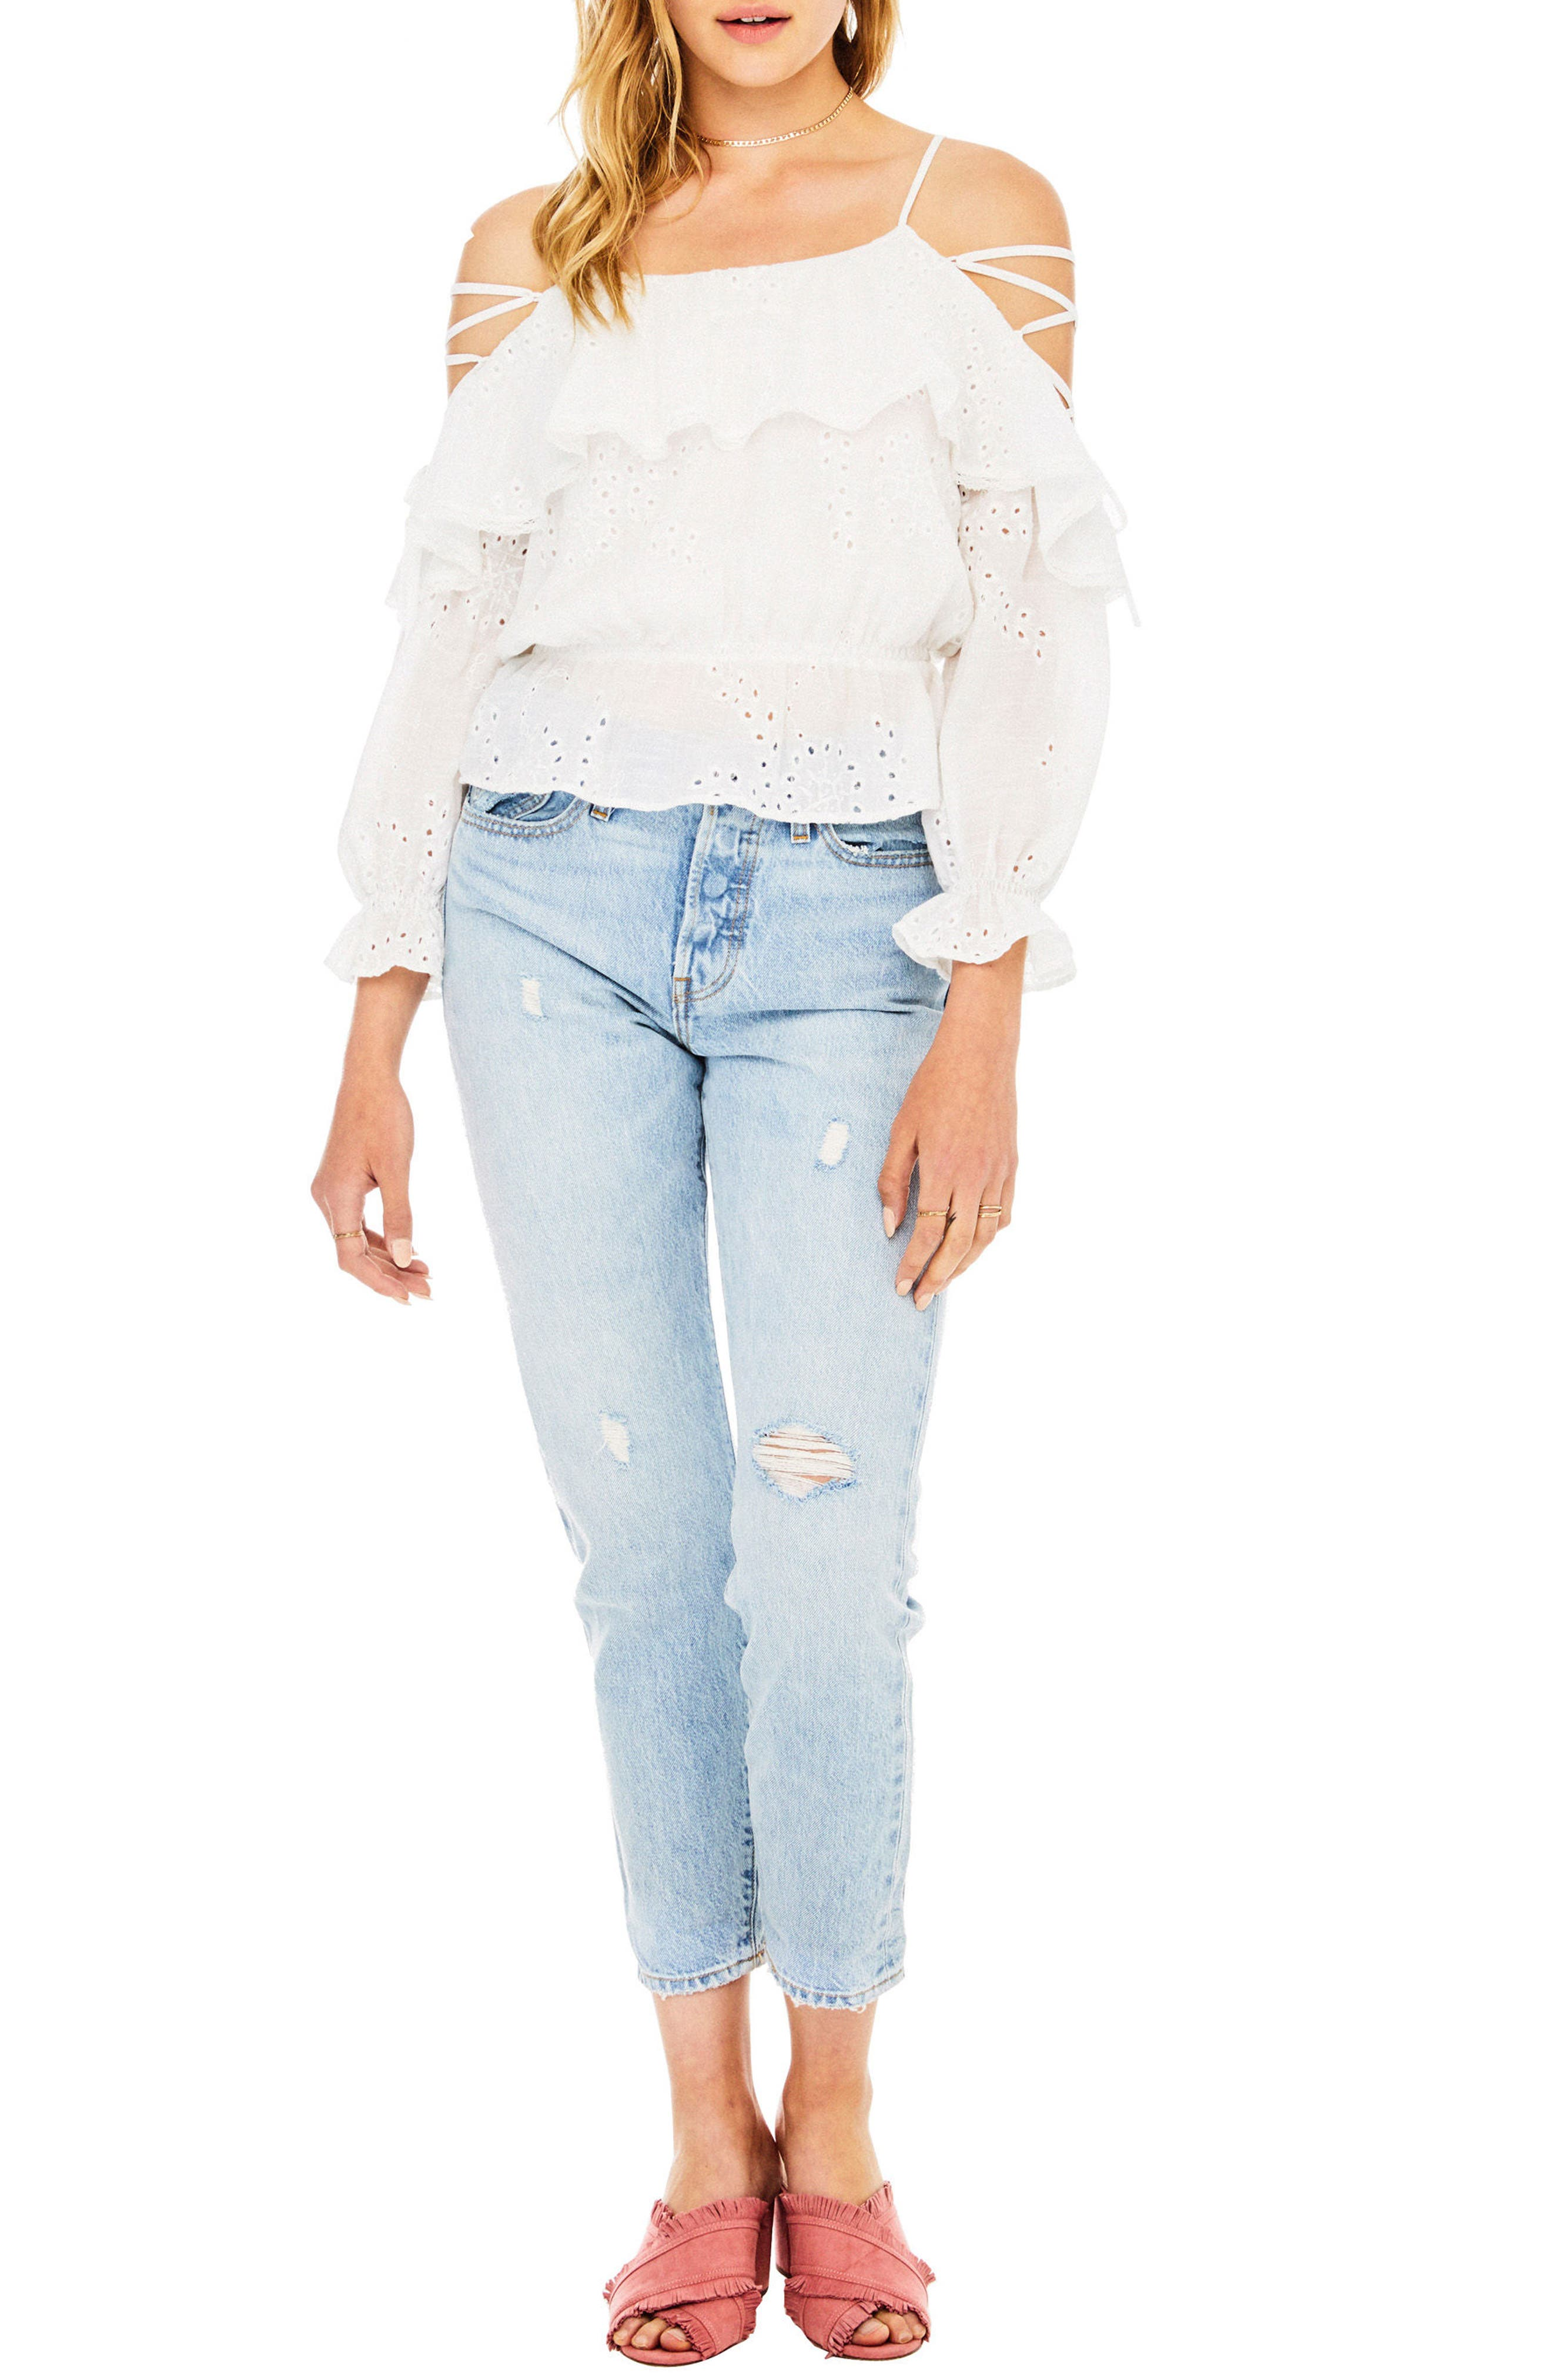 Kennedy Off the Shoulder Top,                             Main thumbnail 1, color,                             White